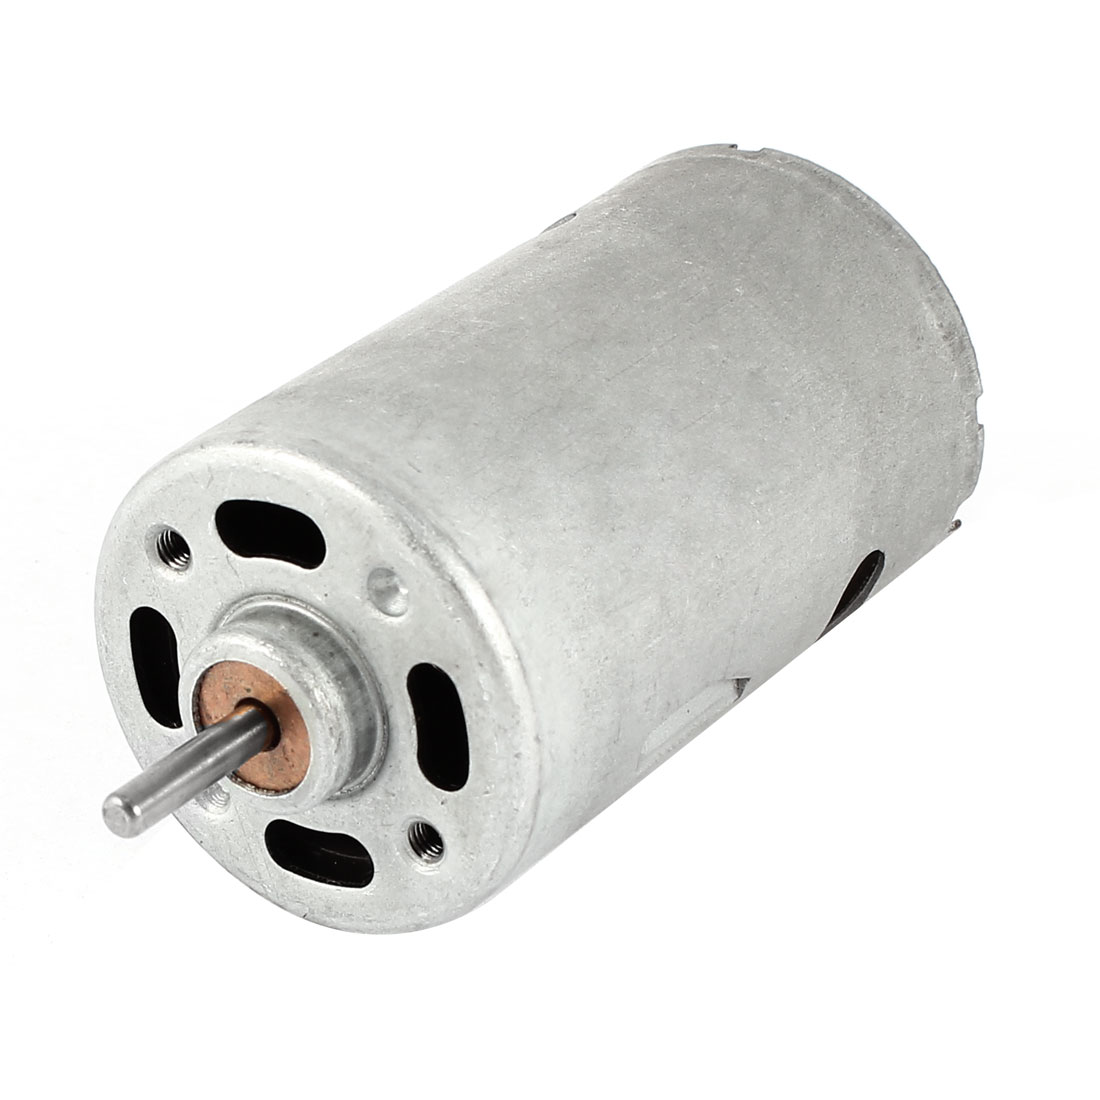 DC 6-12V 8000-15000RPM 3mm Shaft Electric Motor 35mm x 58mm